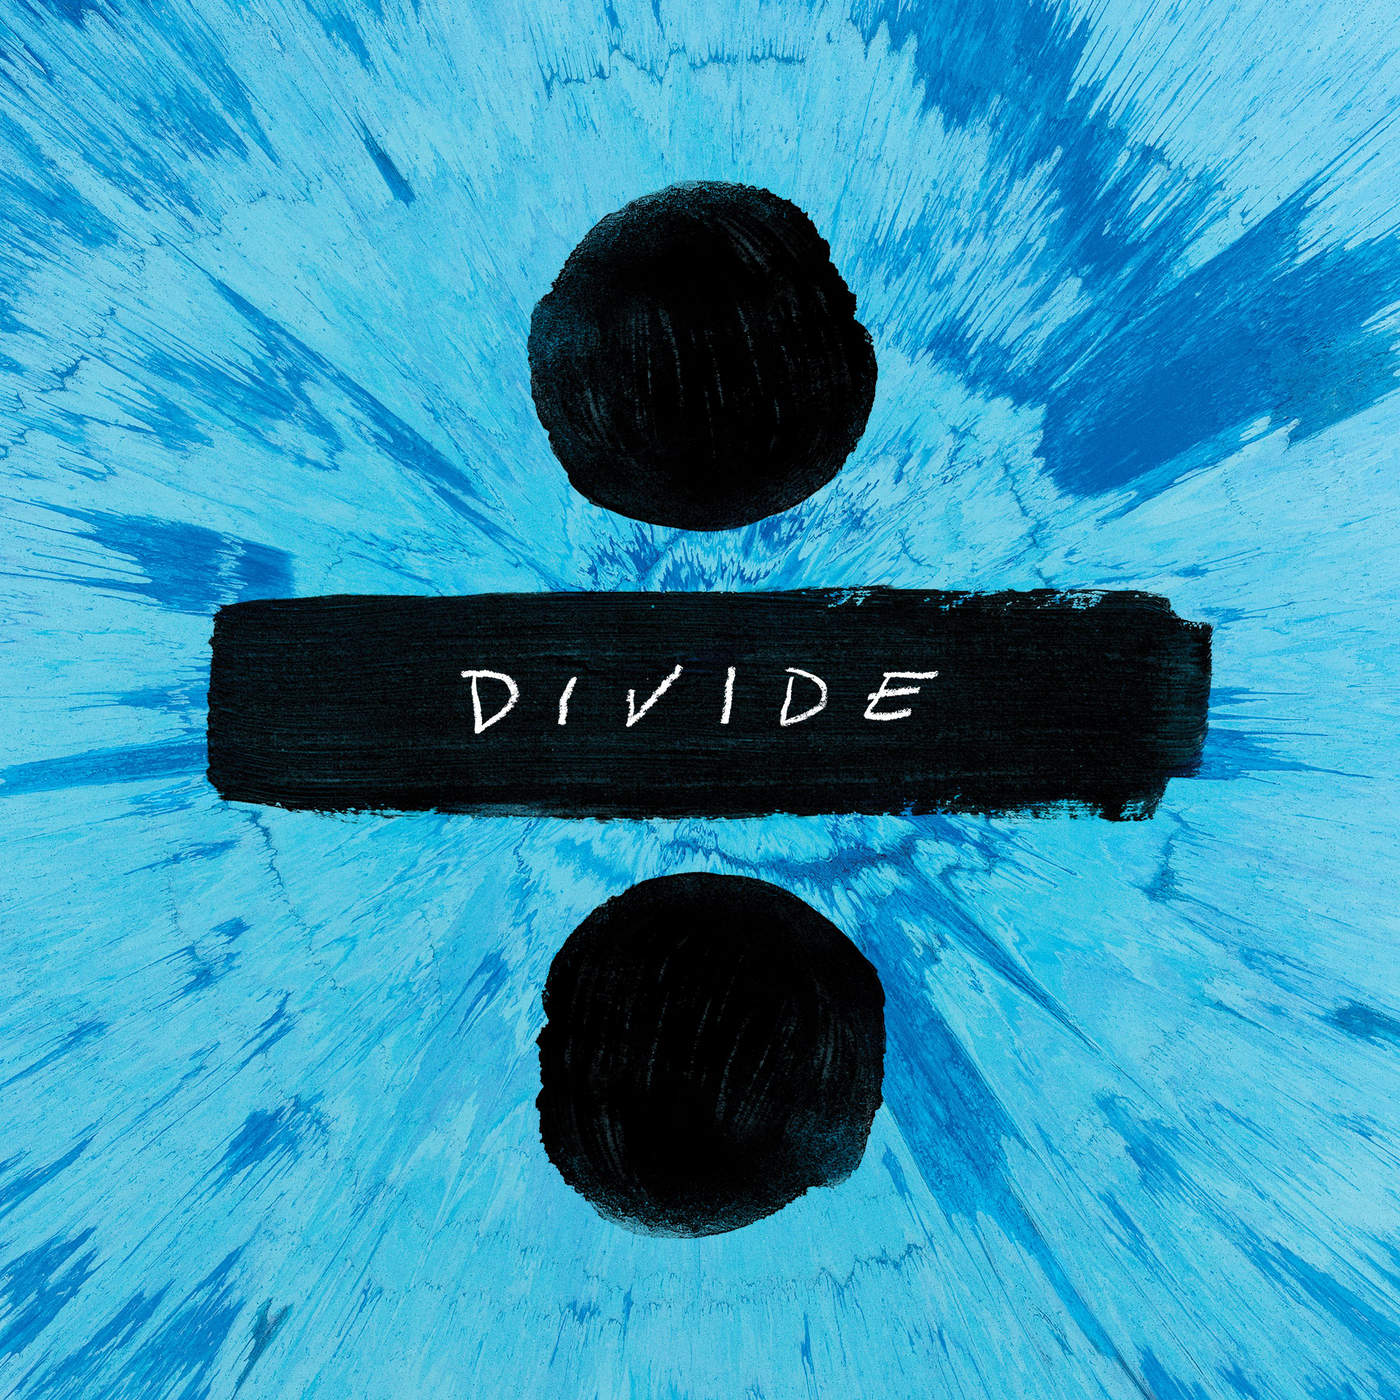 Ed Sheeran ÷ [Album Stream]